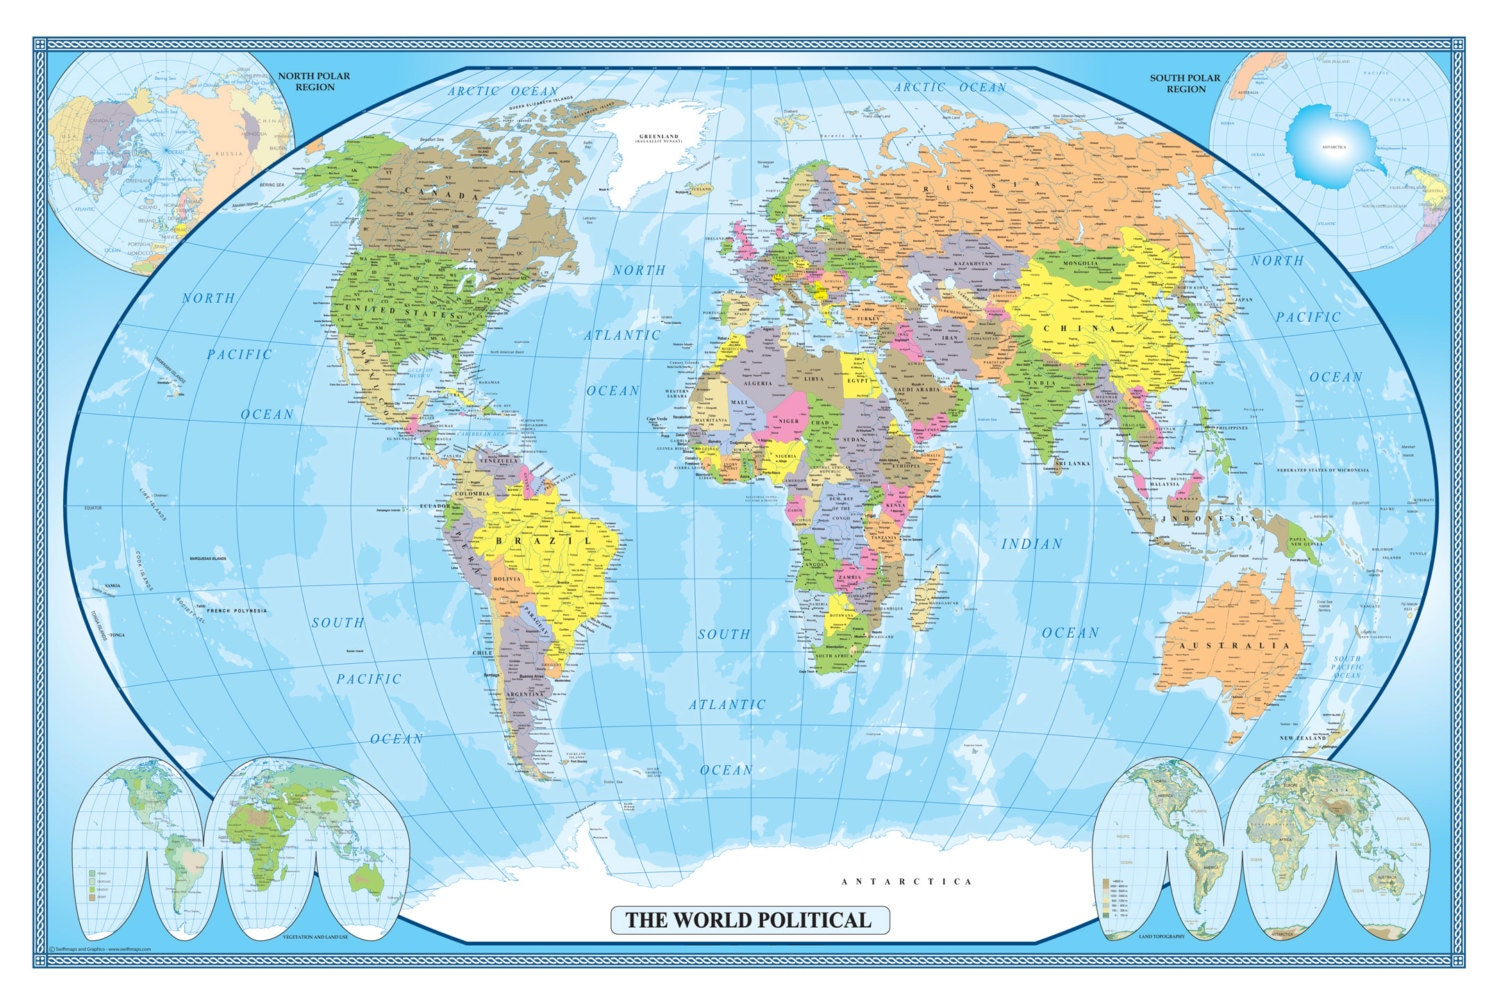 Swiftmaps world classic executive wall map poster mural wall for Executive world map wall mural